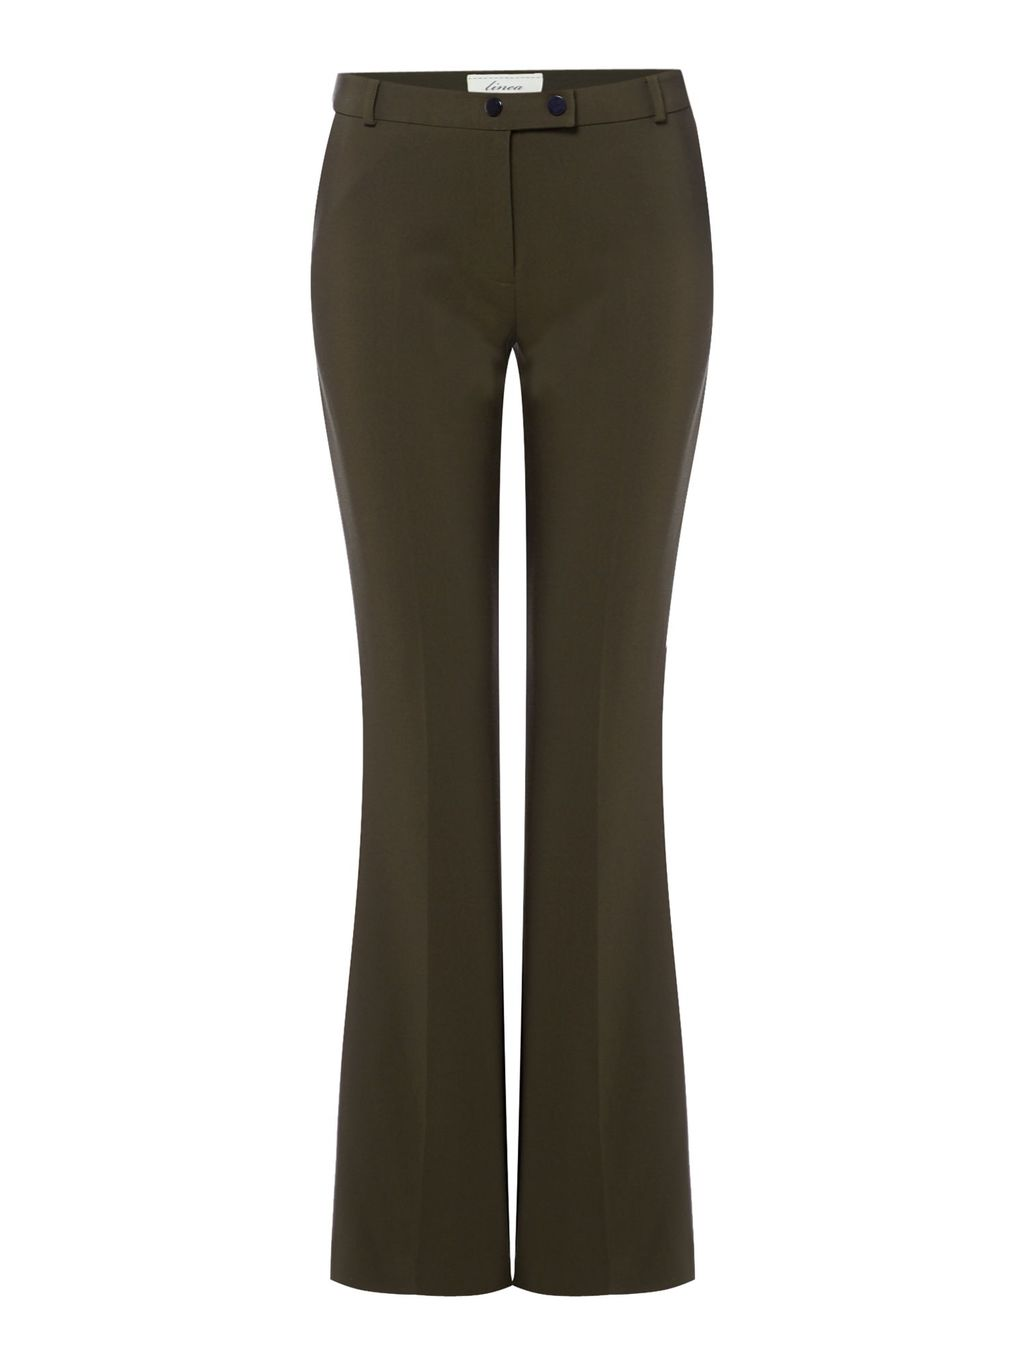 Elle Bootcut Trouser, Khaki - length: standard; pattern: plain; waist: mid/regular rise; predominant colour: khaki; occasions: casual, creative work; fibres: polyester/polyamide - stretch; fit: bootcut; pattern type: fabric; texture group: other - light to midweight; style: standard; season: s/s 2016; wardrobe: basic